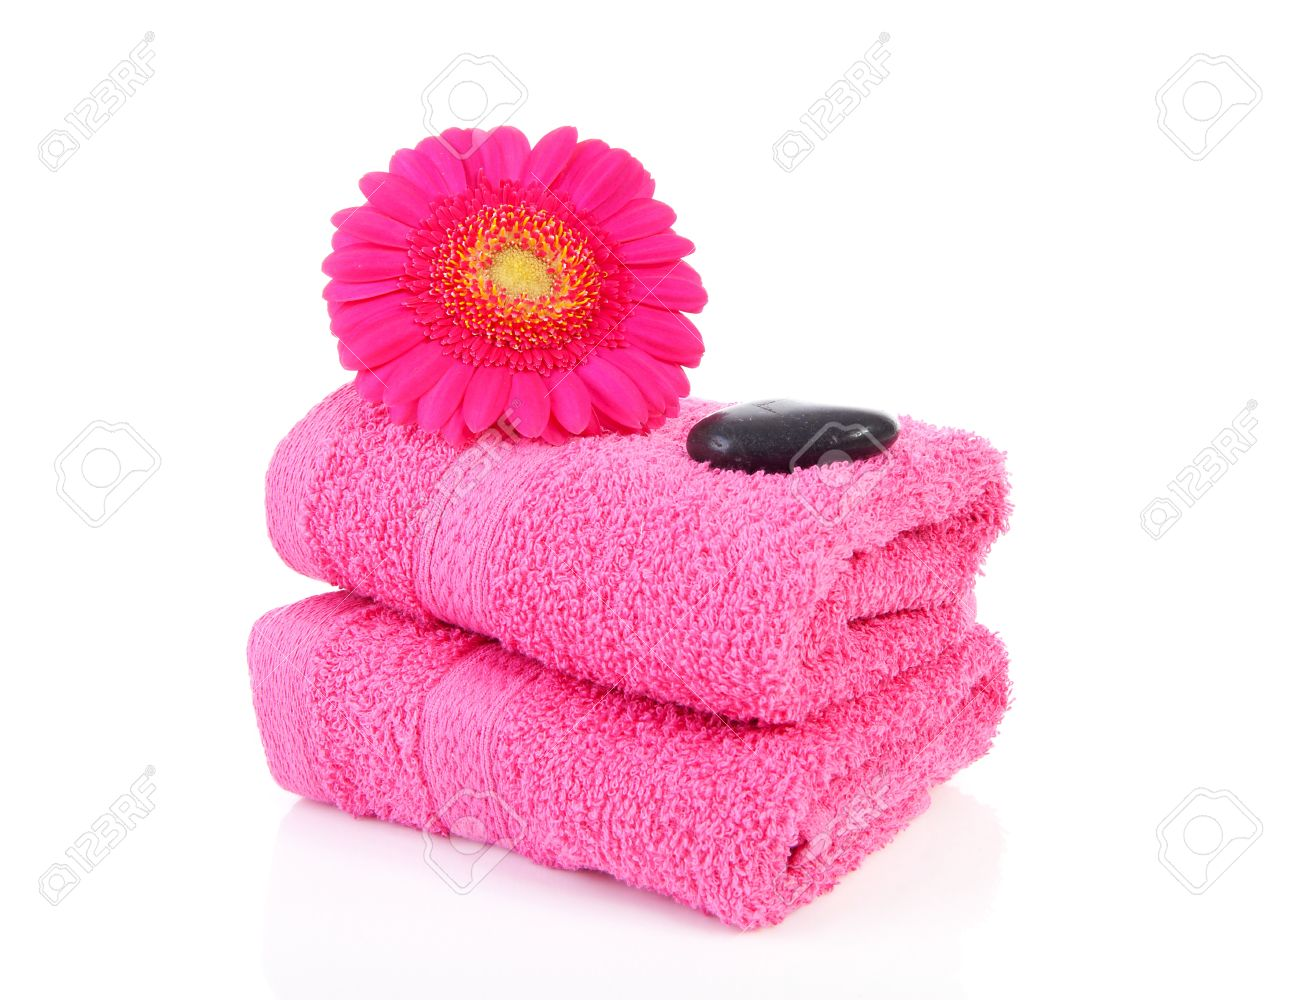 Pink Bathroom Accessories With Towel, Stones And Gerber Flower Over White  Background Stock Photo